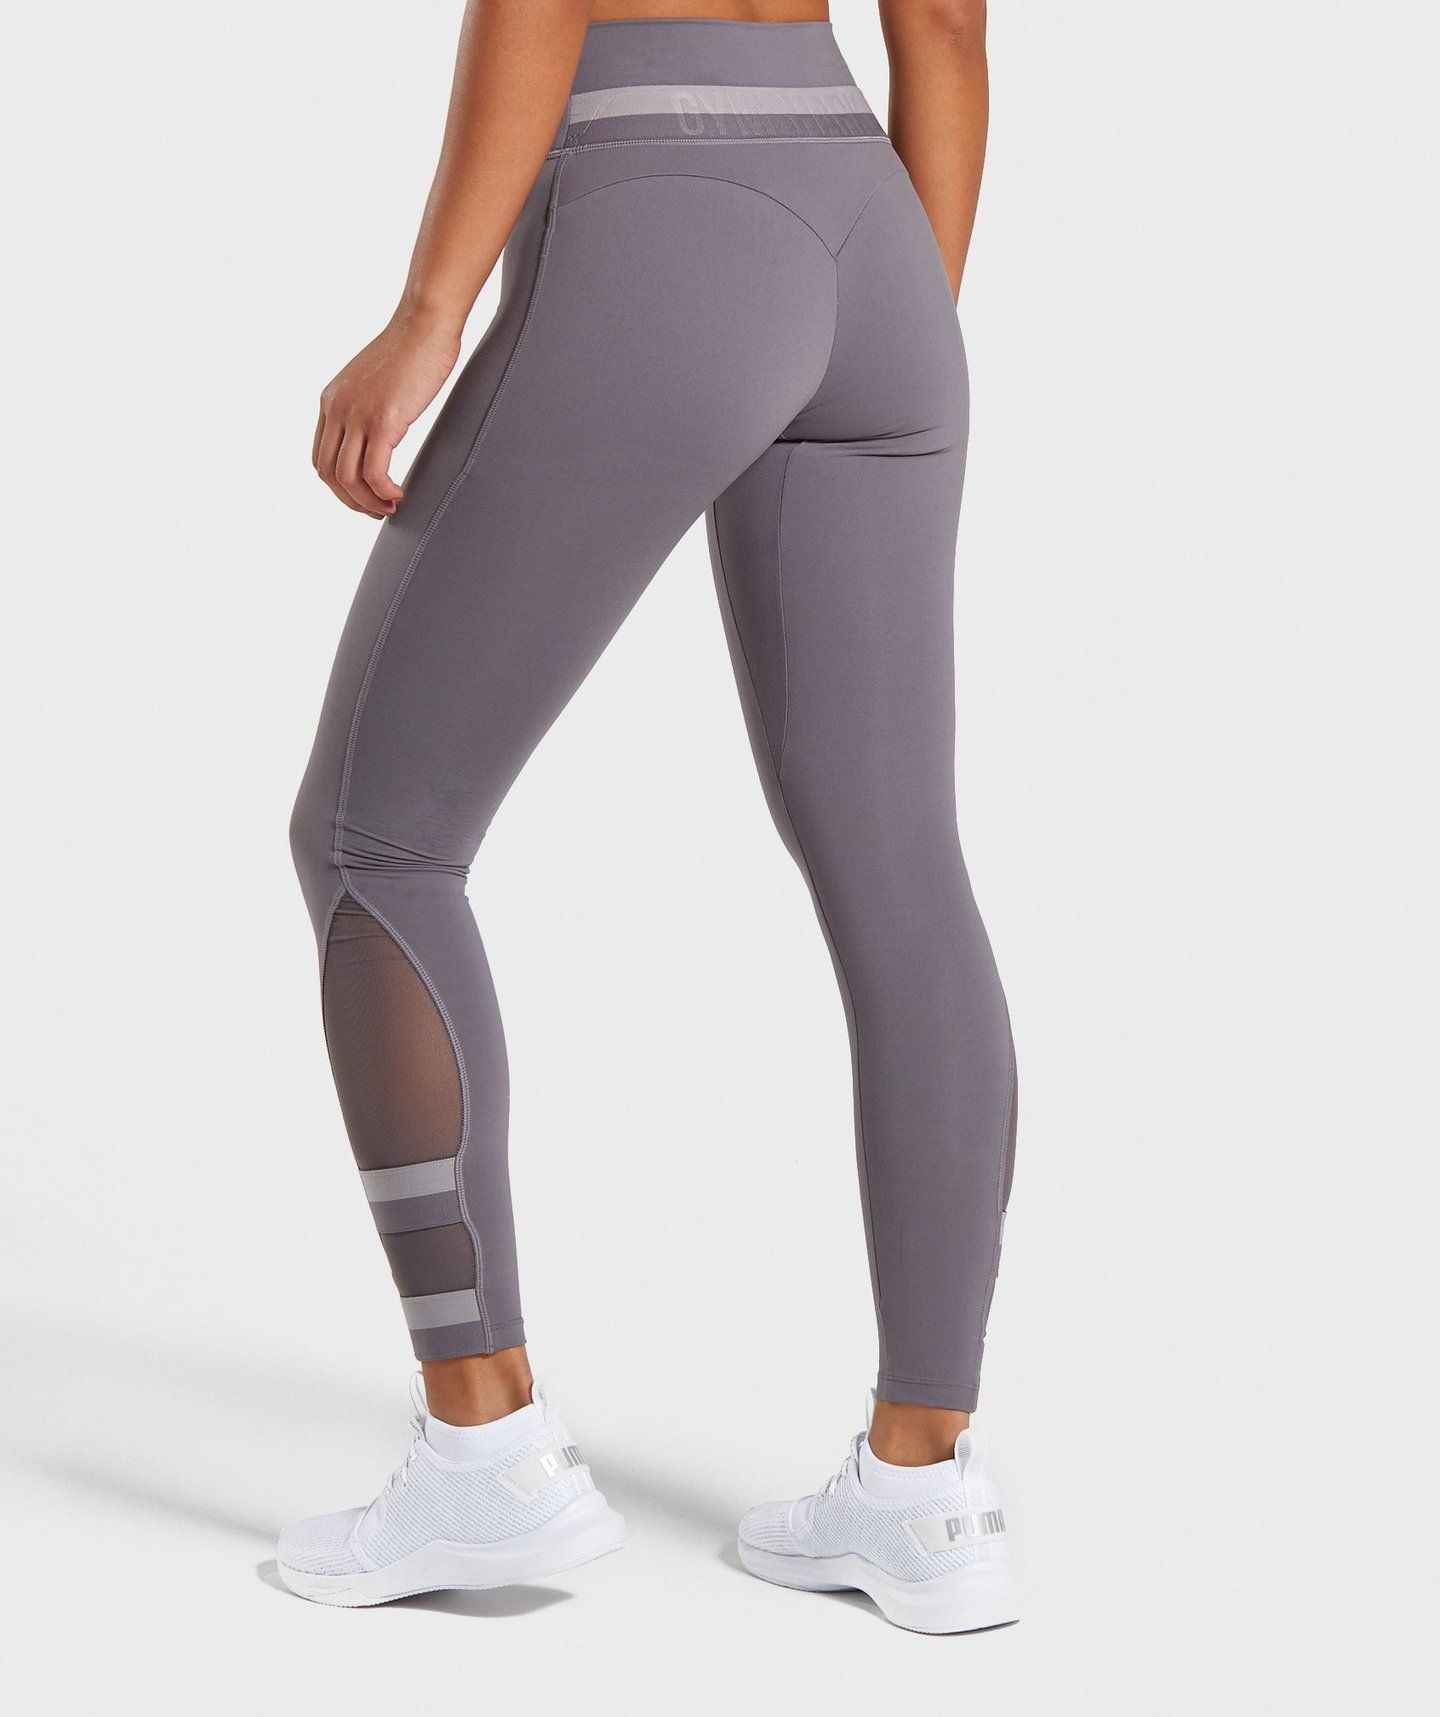 0b05044229633 Gymshark Empower Leggings - Slate Lavender in 2019 | Activewear ...